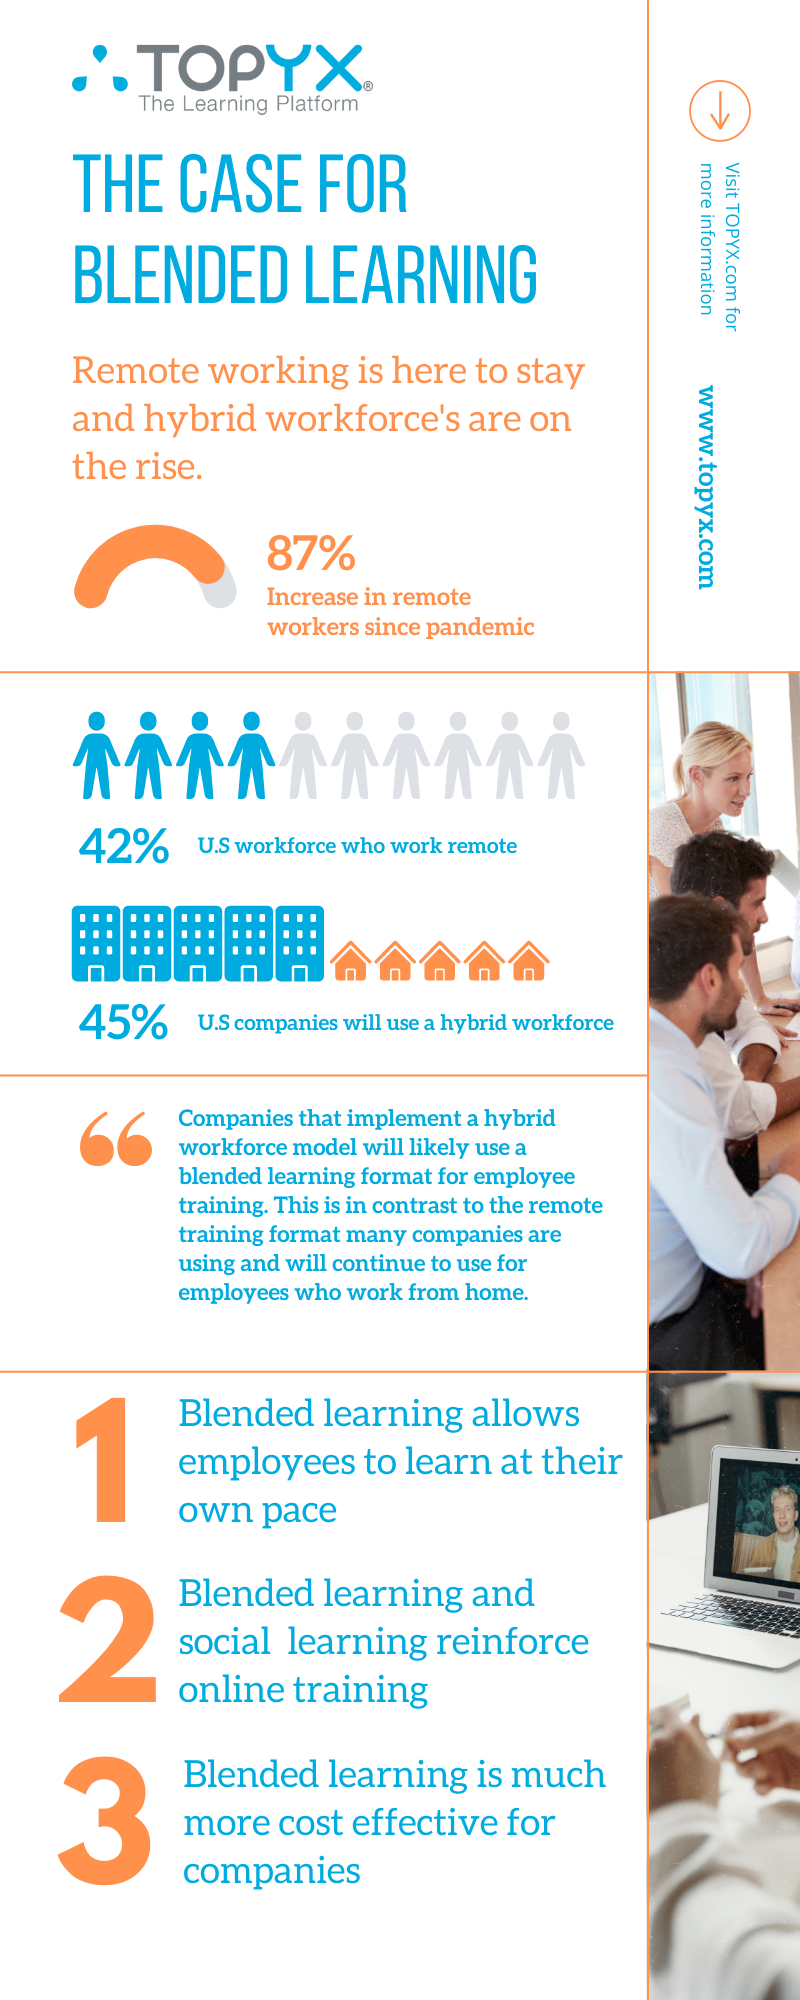 The Case for Blended Learning Infographic